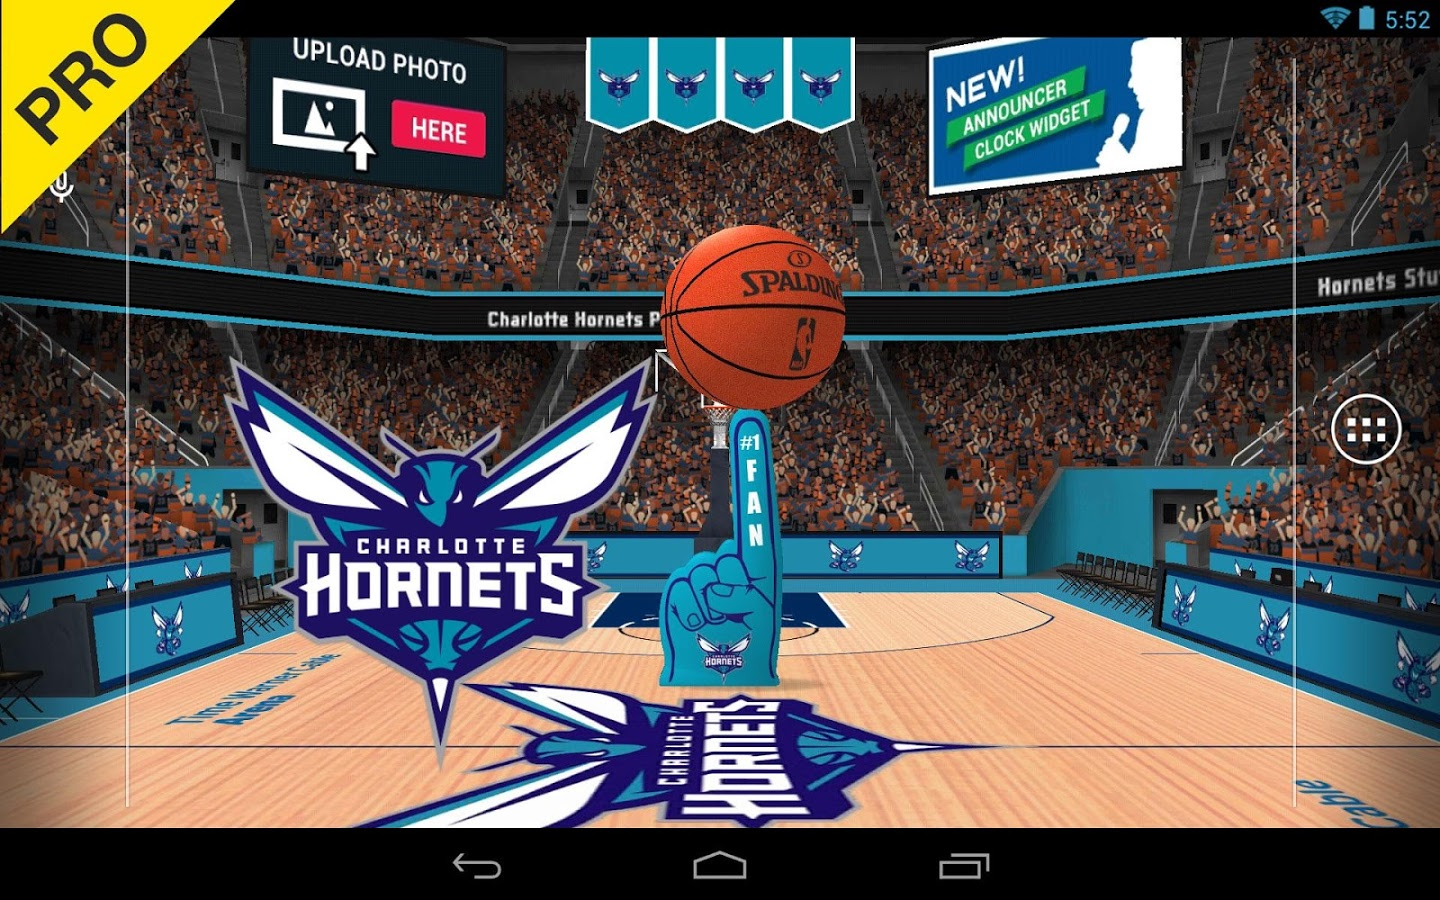 Nba Wallpapers For Android: NBA 2016 Live Wallpaper - Download